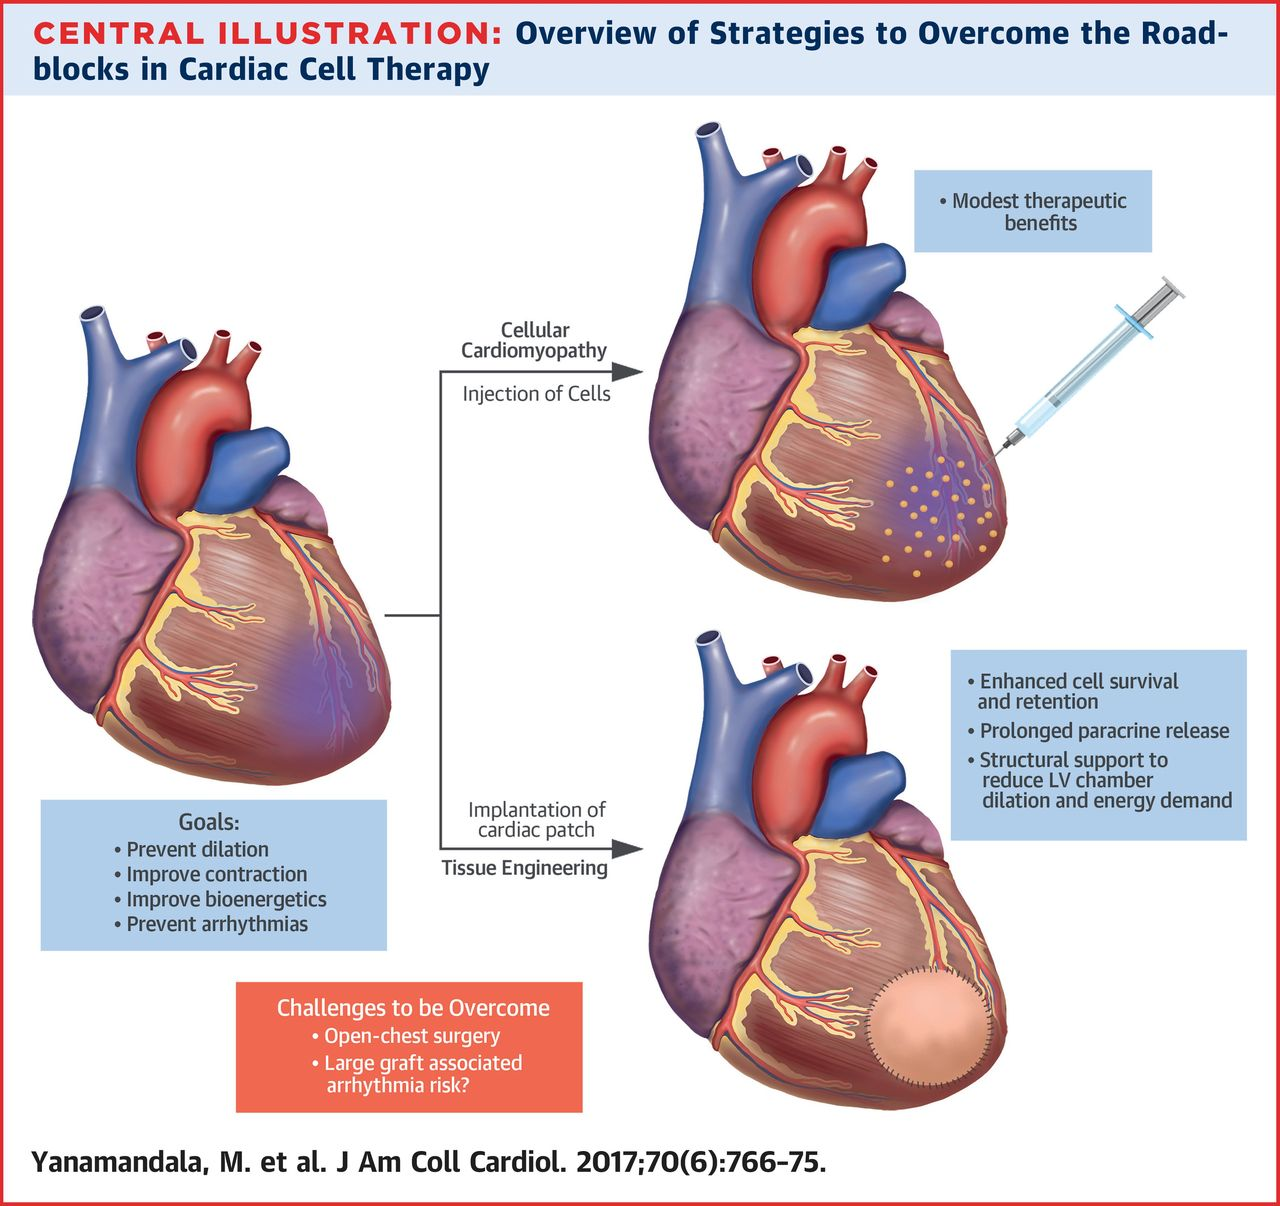 Overcoming the Roadblocks to Cardiac Cell Therapy Using Tissue ...